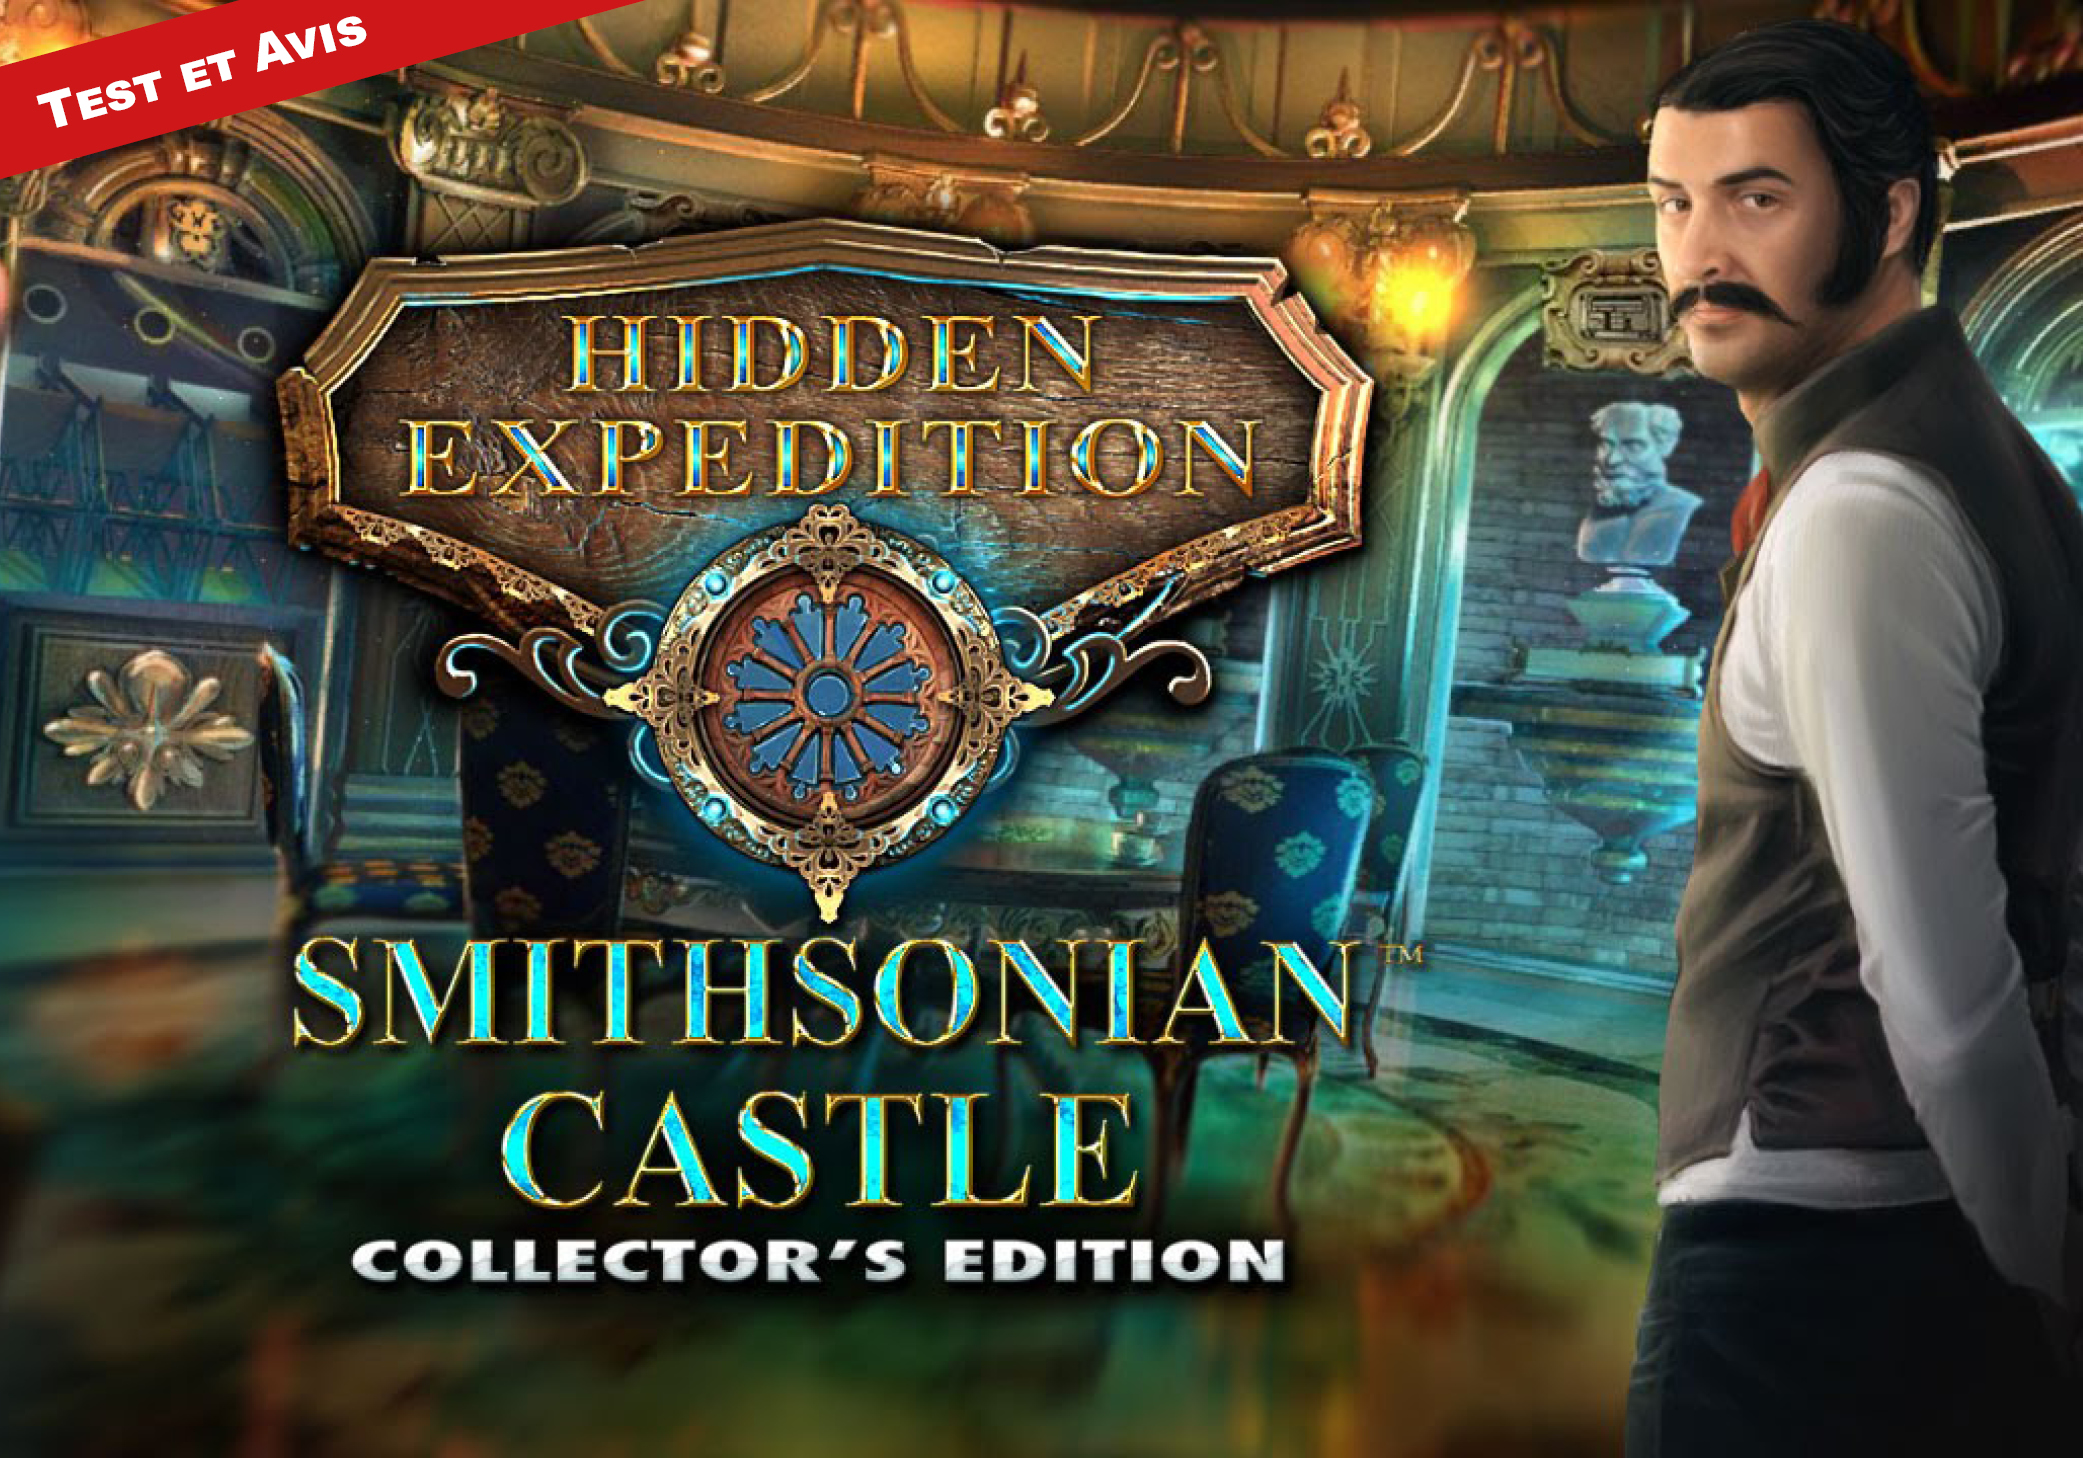 Hidden expedition Smithsonian Castle (PC)